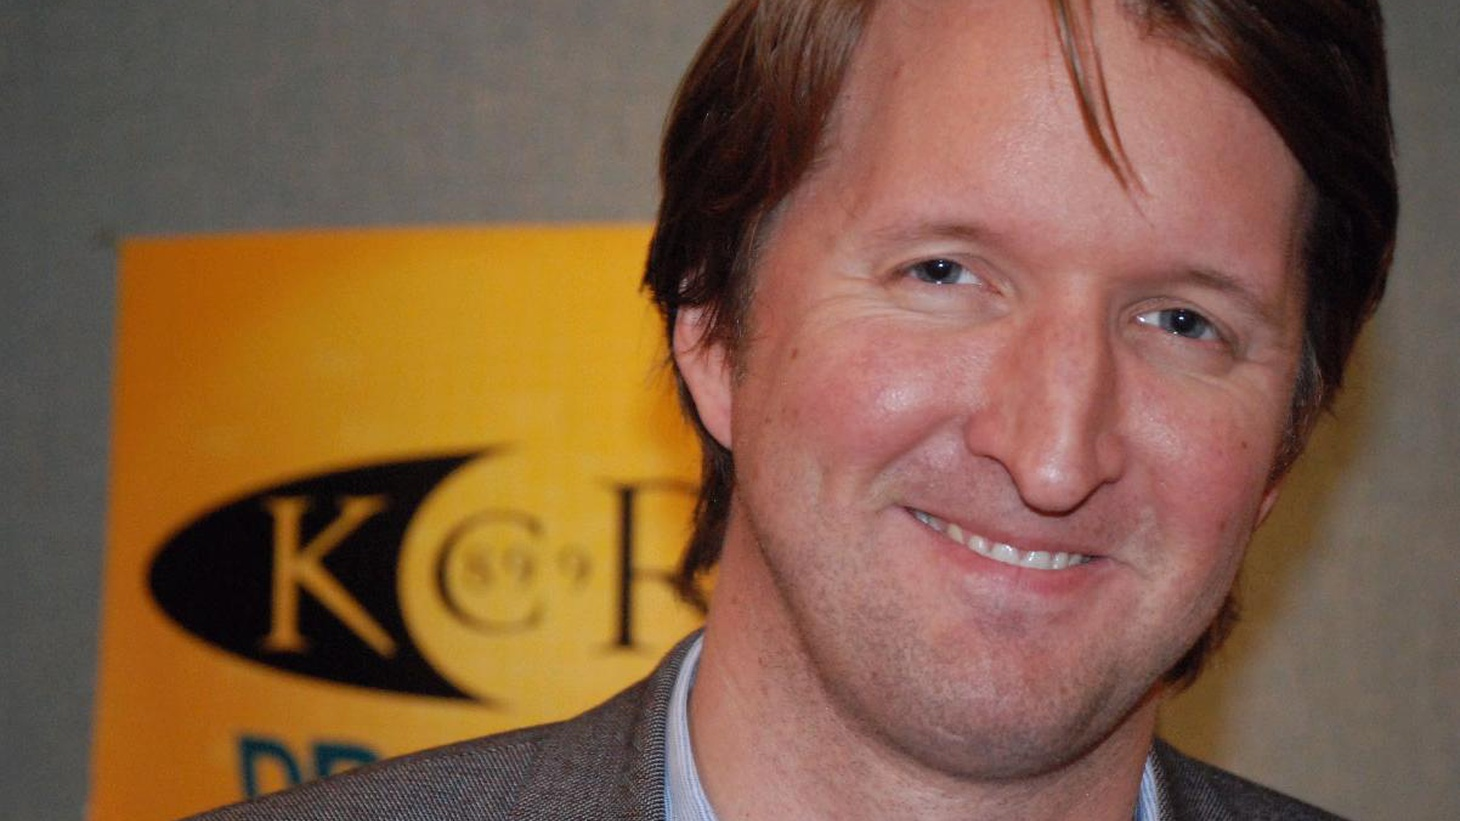 The King's Speech director Tom Hooper talks about the anxiety of funding this historical buddy drama and the anxiety of learning Hollywood etiquette. He also gives a convincing argument for changing the MPAA ratings system. Plus, Franklin Leonard's 2010 Black List, the annual compilation of the most loved scripts that made the rounds in Hollywood this past year.